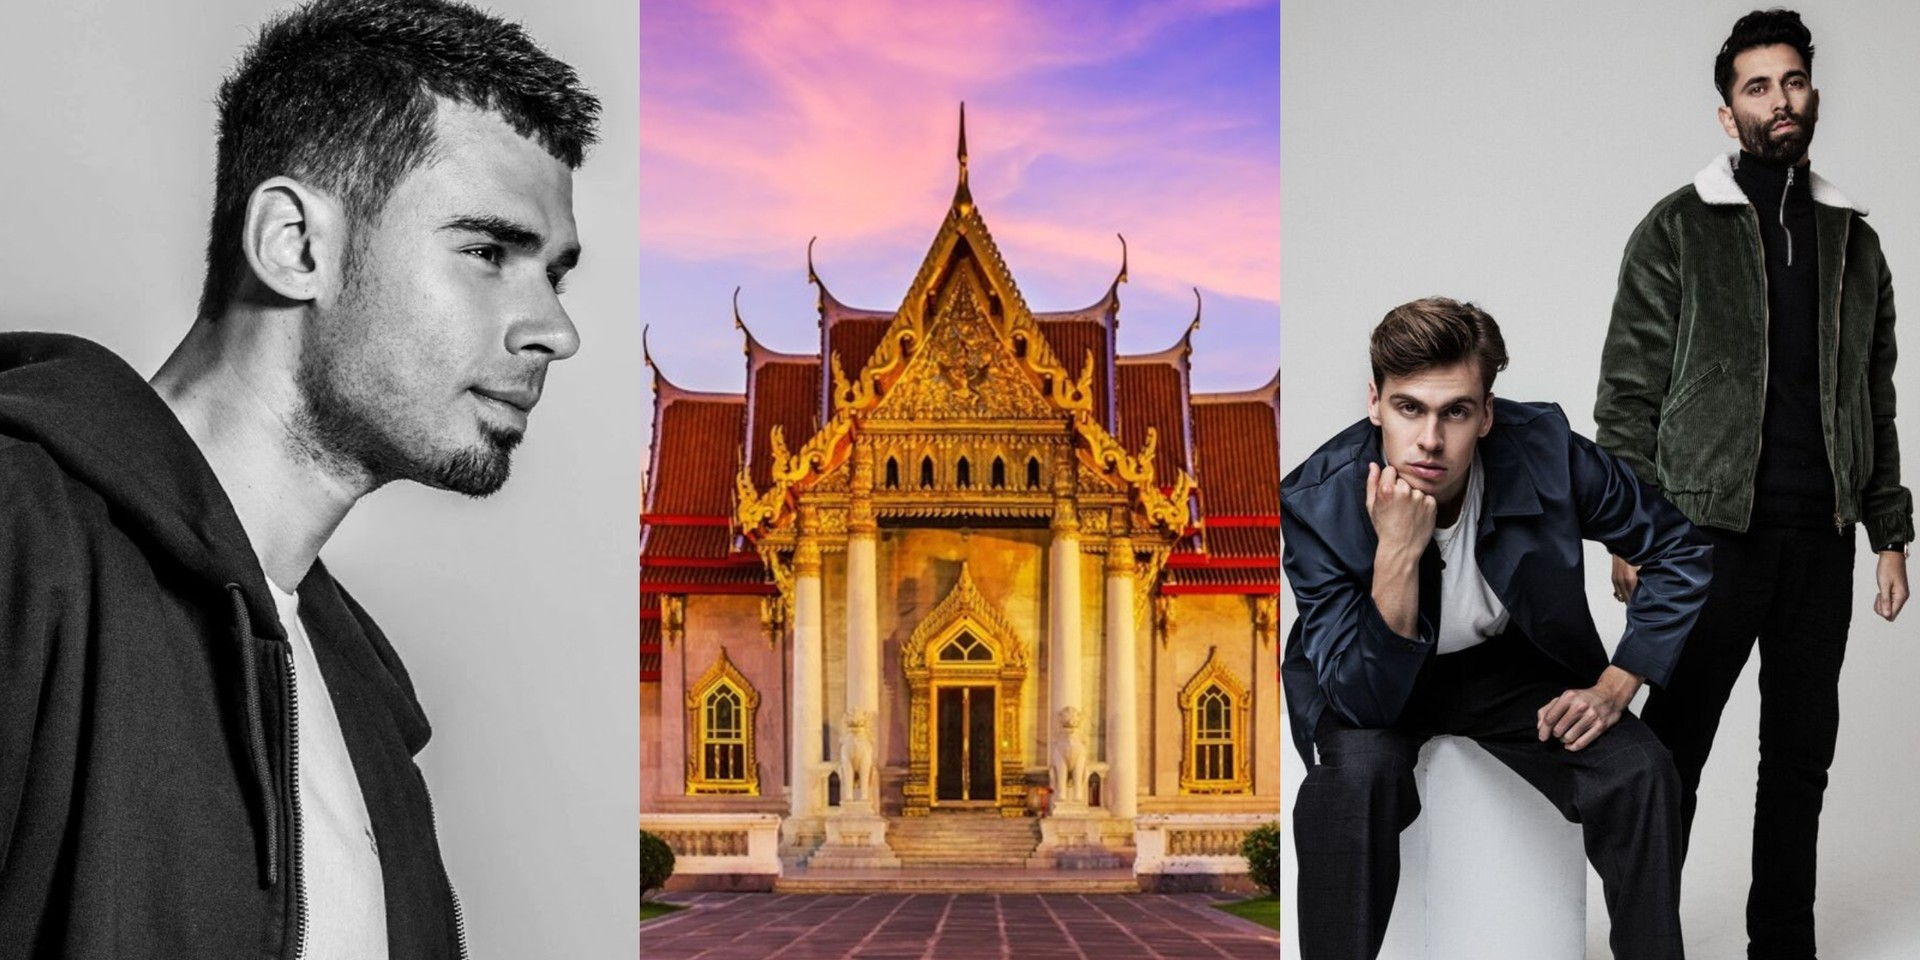 7 reasons to attend the inaugural Siam Songkran Music Festival